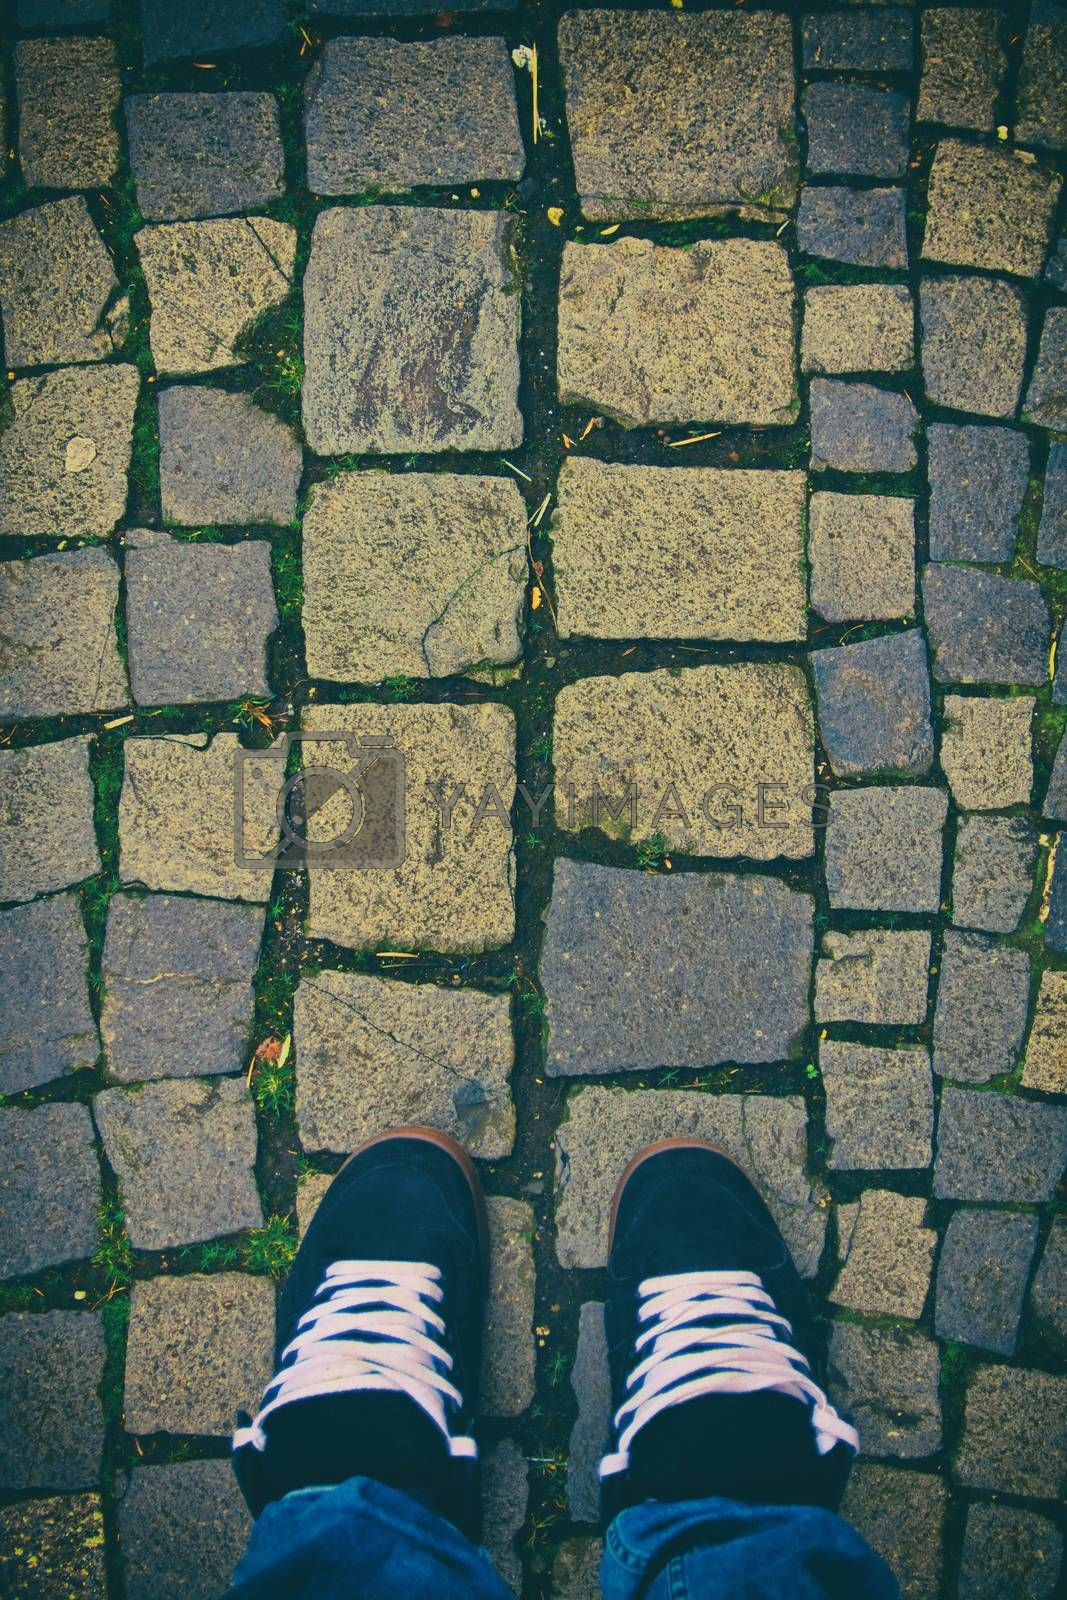 Top down view of feet in a pair of skater sneakers on a cobblestone pavement. Cobblestone patterned background. Minimalist urban style. Feet on cobblestones.